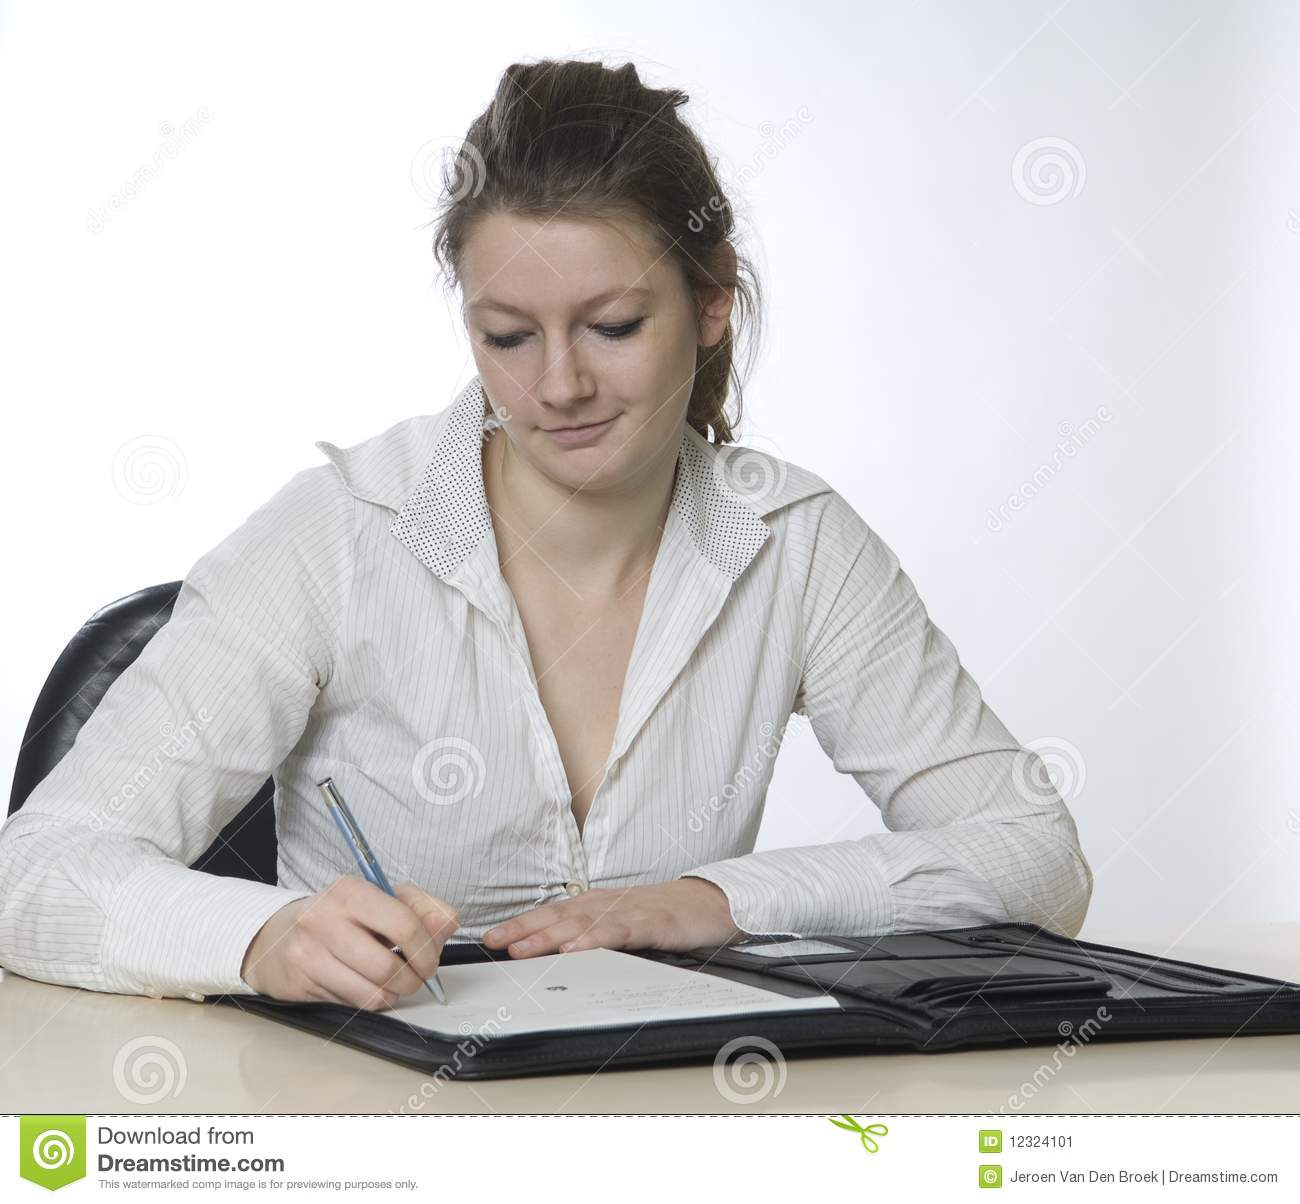 woman writing 12324101 - Quick Plans For coolessay net Clarified